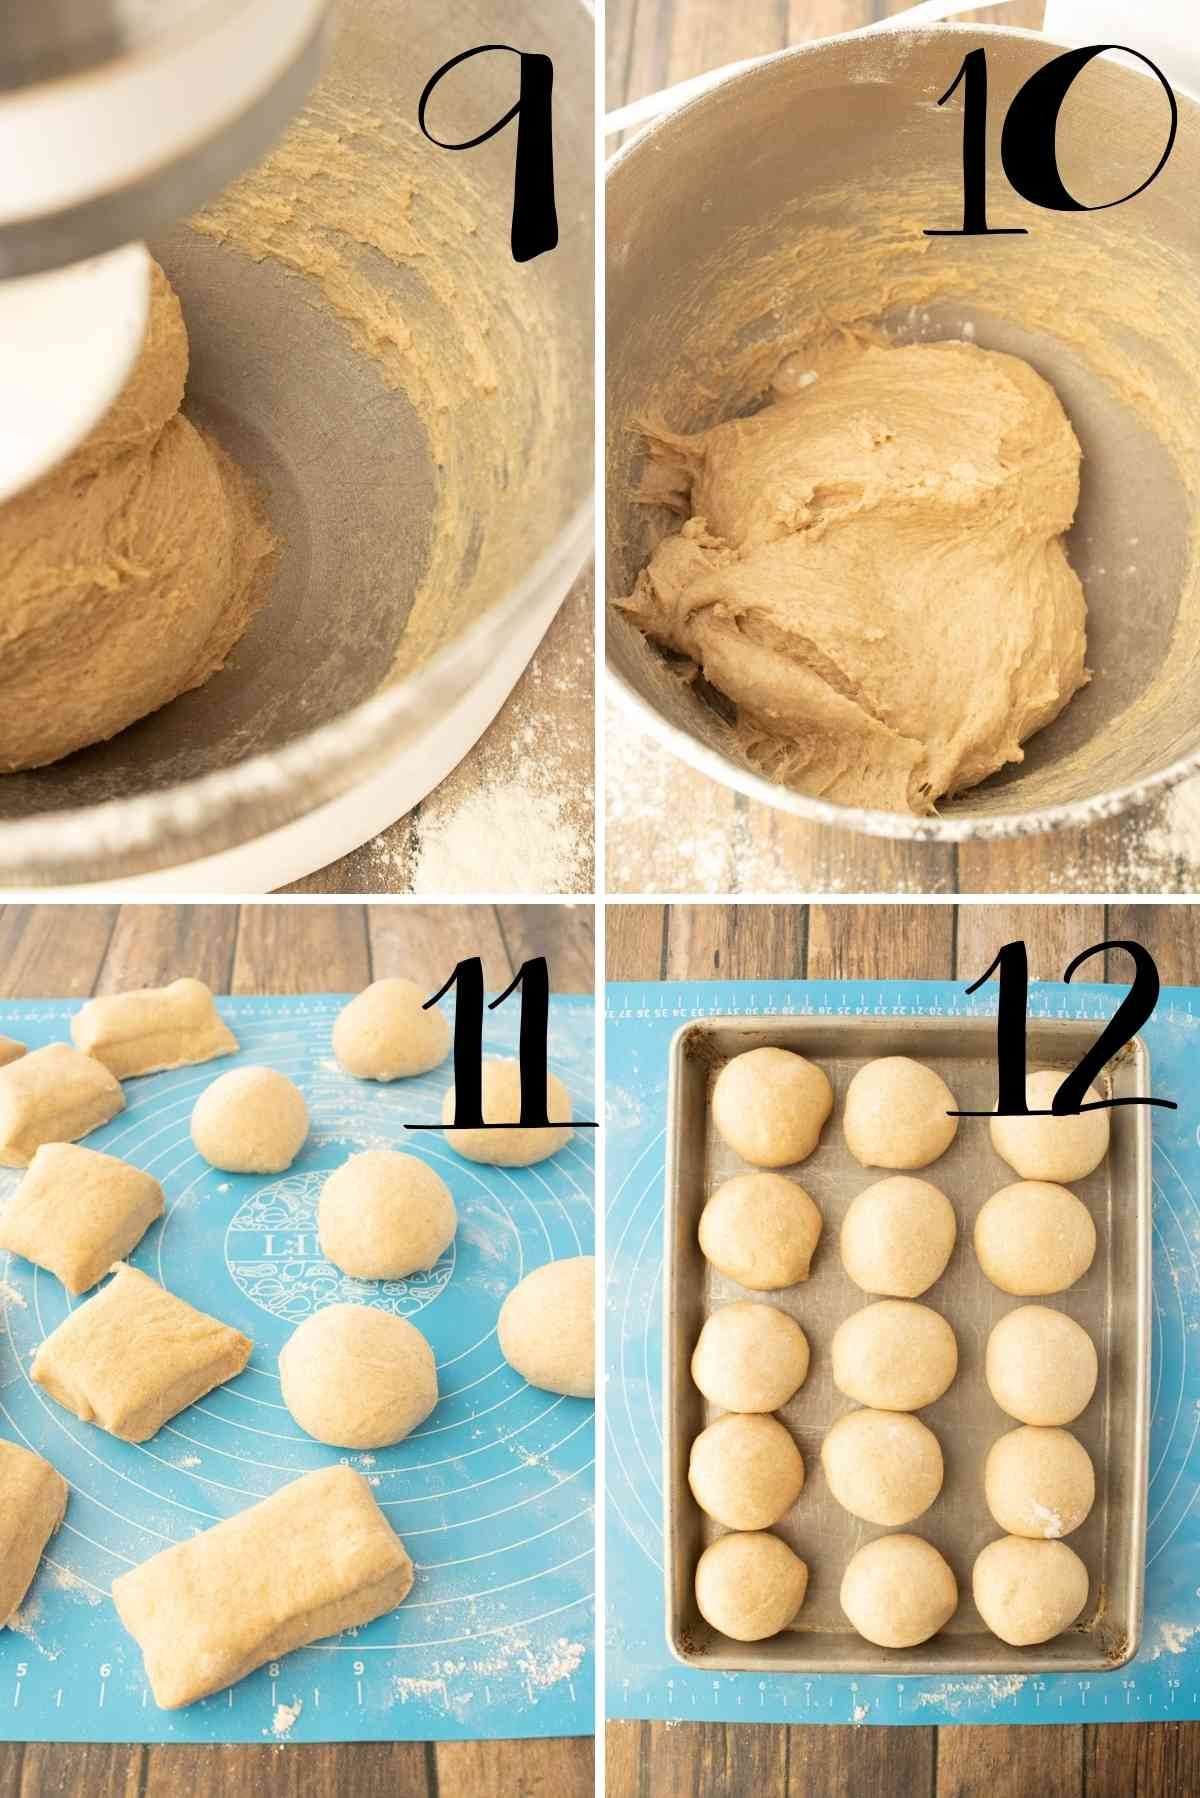 Dough kneaded, left to raise, dumped out divided into pieces and shaped.